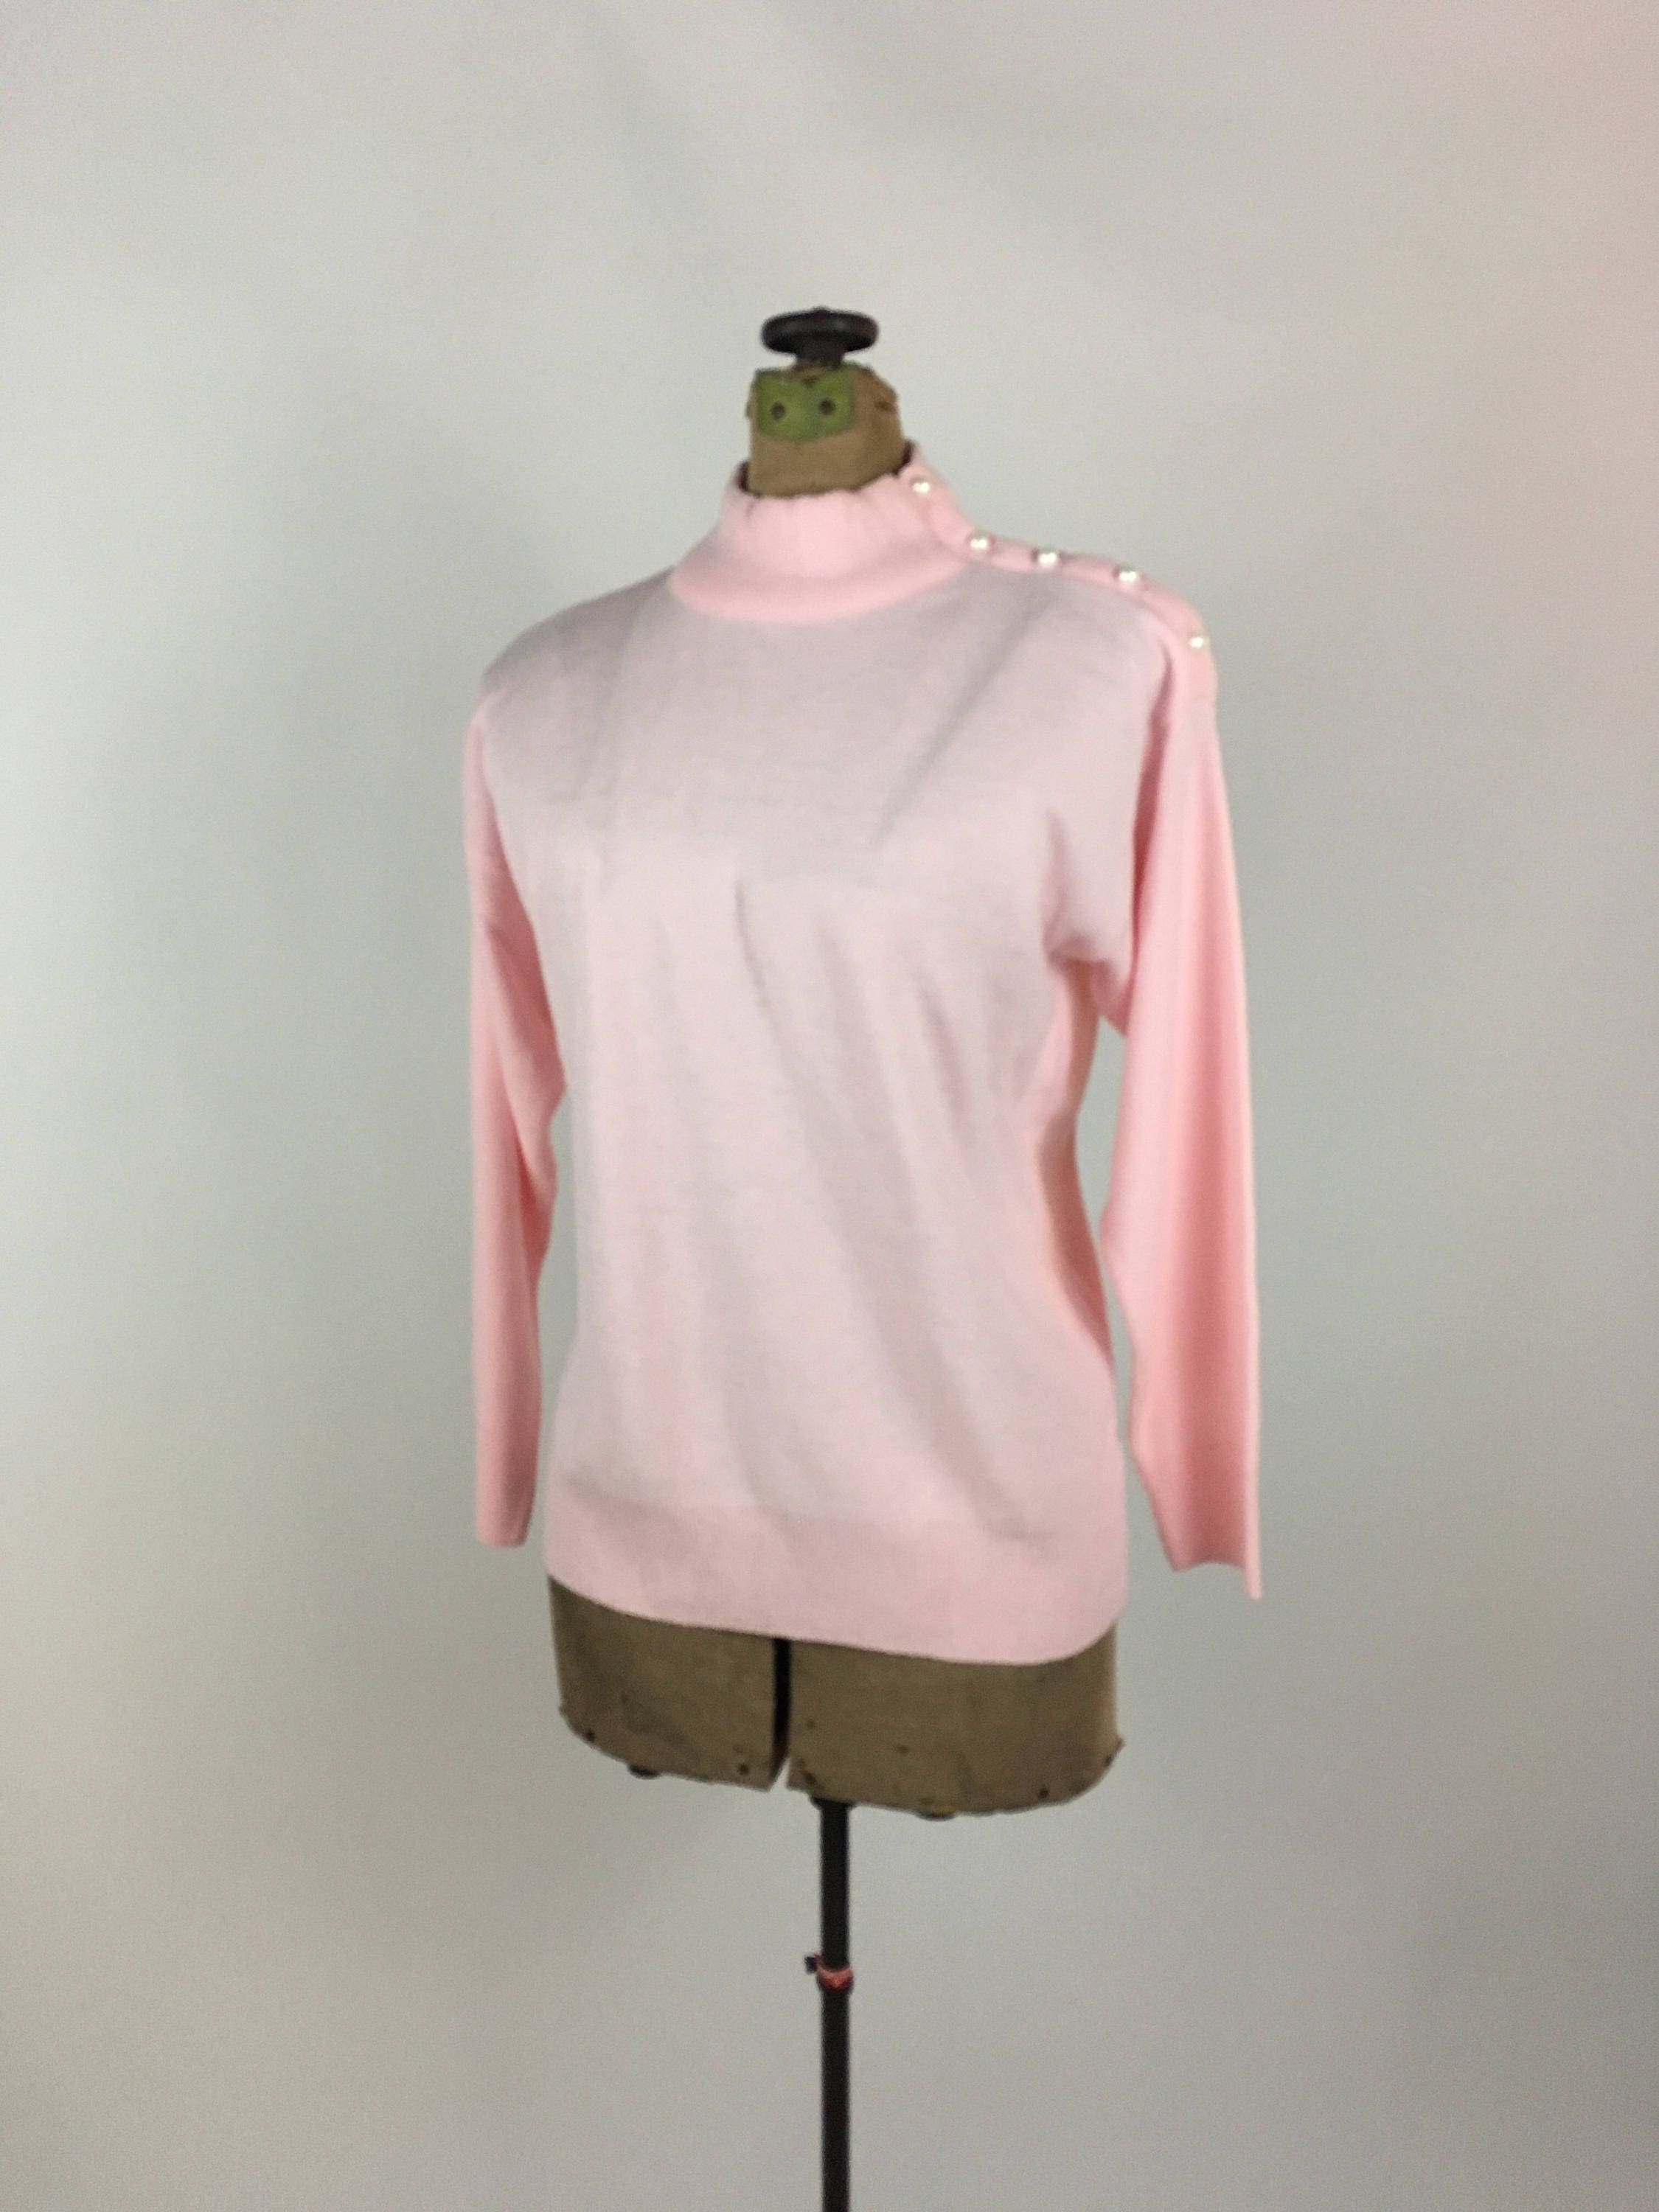 Soft Pink Turtleneck Pullover Sweater Vintage 1970s Pale Pink